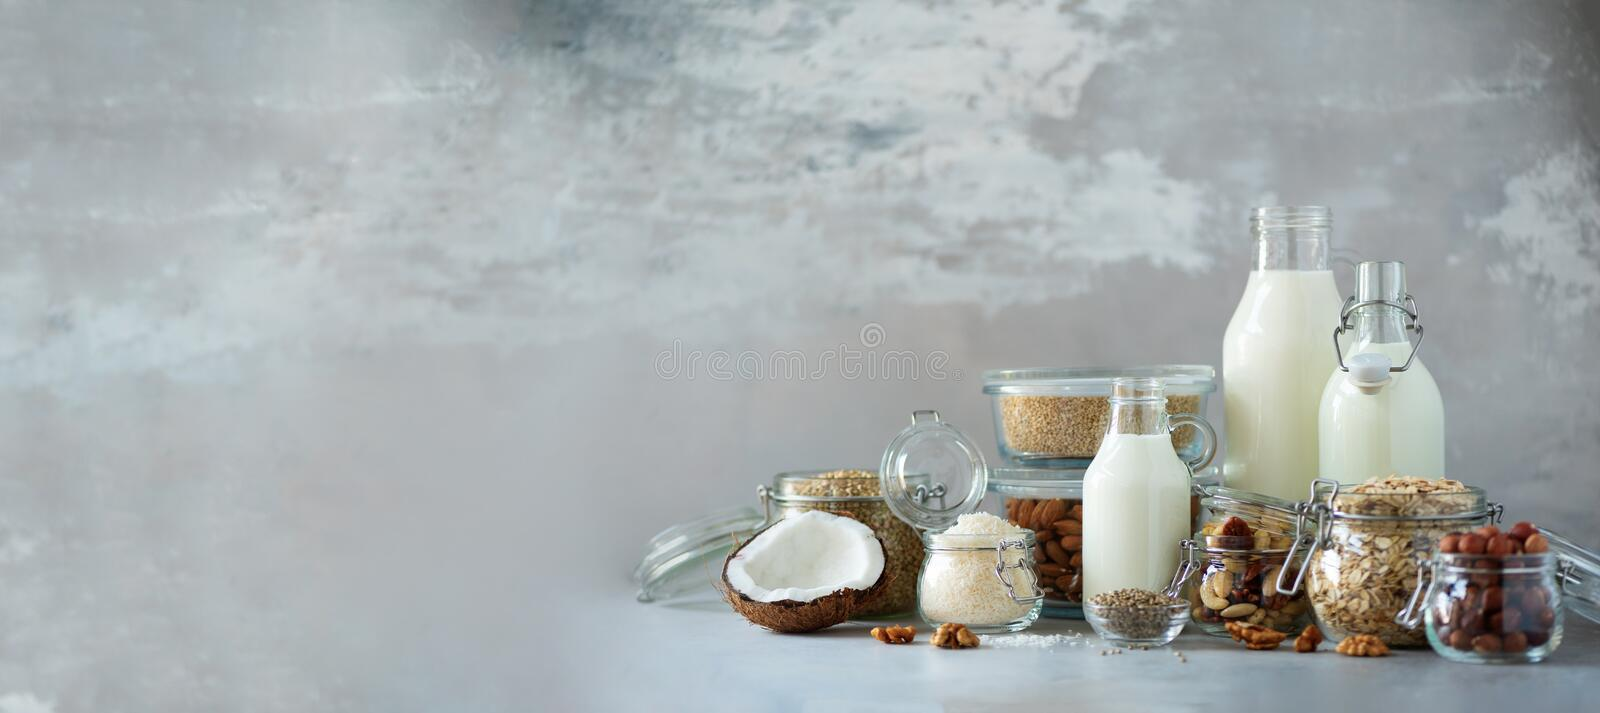 Glass bottles of vegan plant milk and almonds, nuts, coconut, hemp seed milk on grey concrete background. Banner with copy space. Dairy free milk substitute stock photos